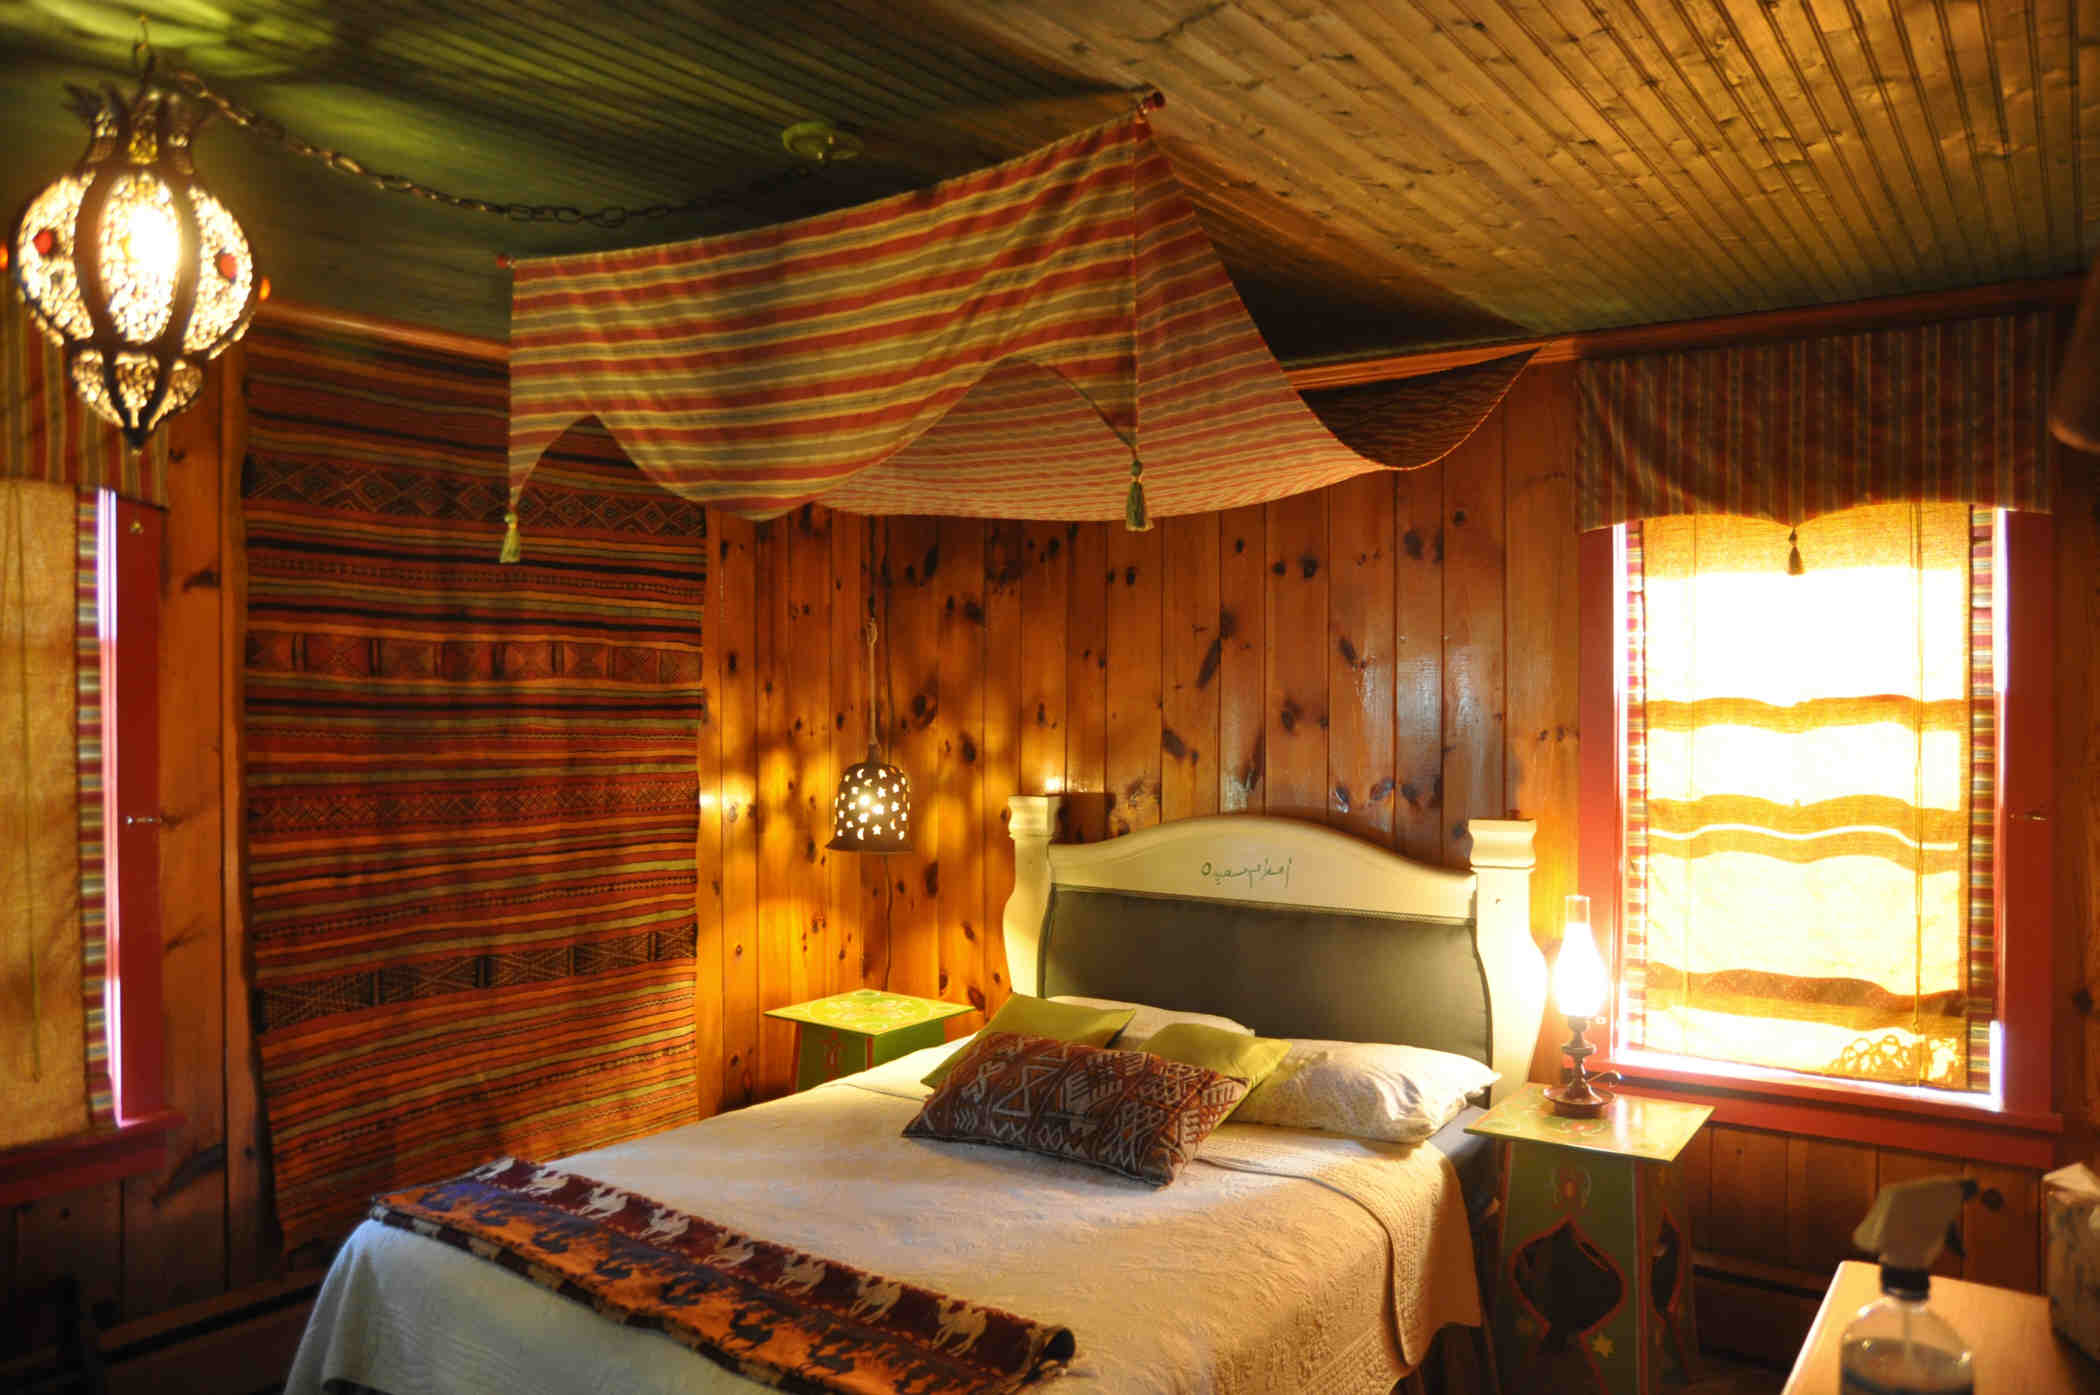 The Moroccan bedroom